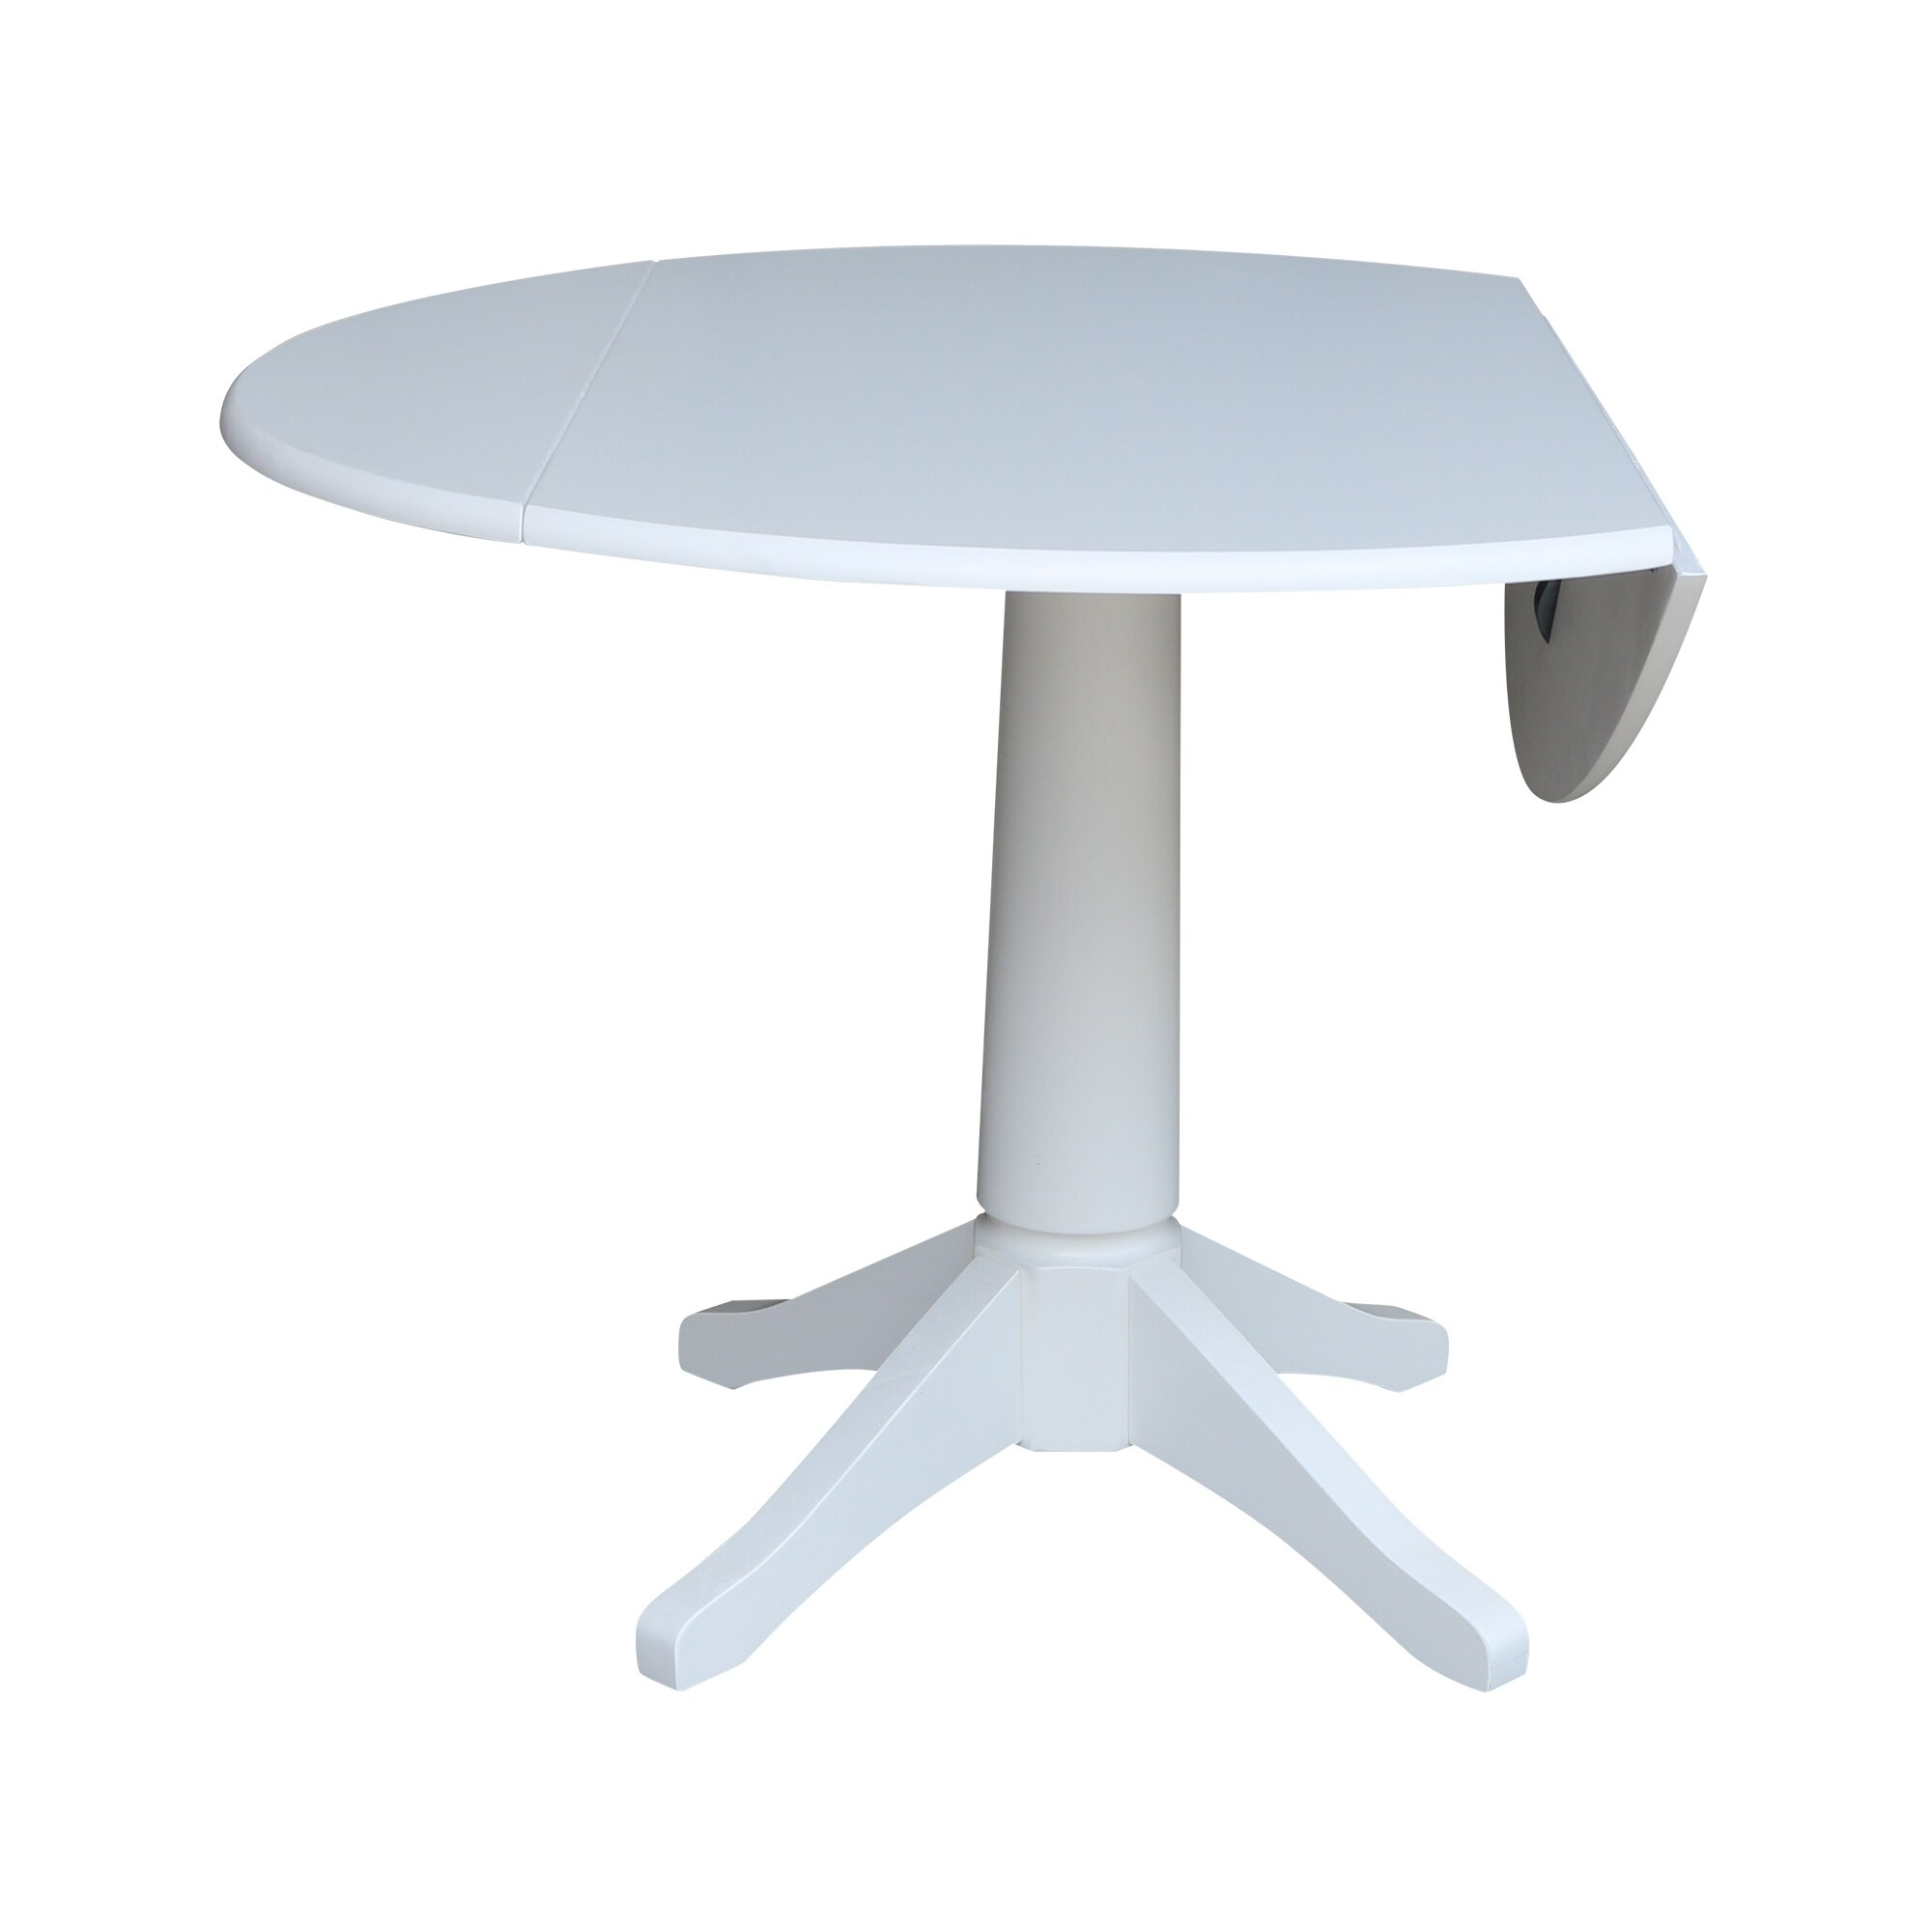 42 In Round Top Dual Drop Leaf Pedestal Table White Overstock 24204641